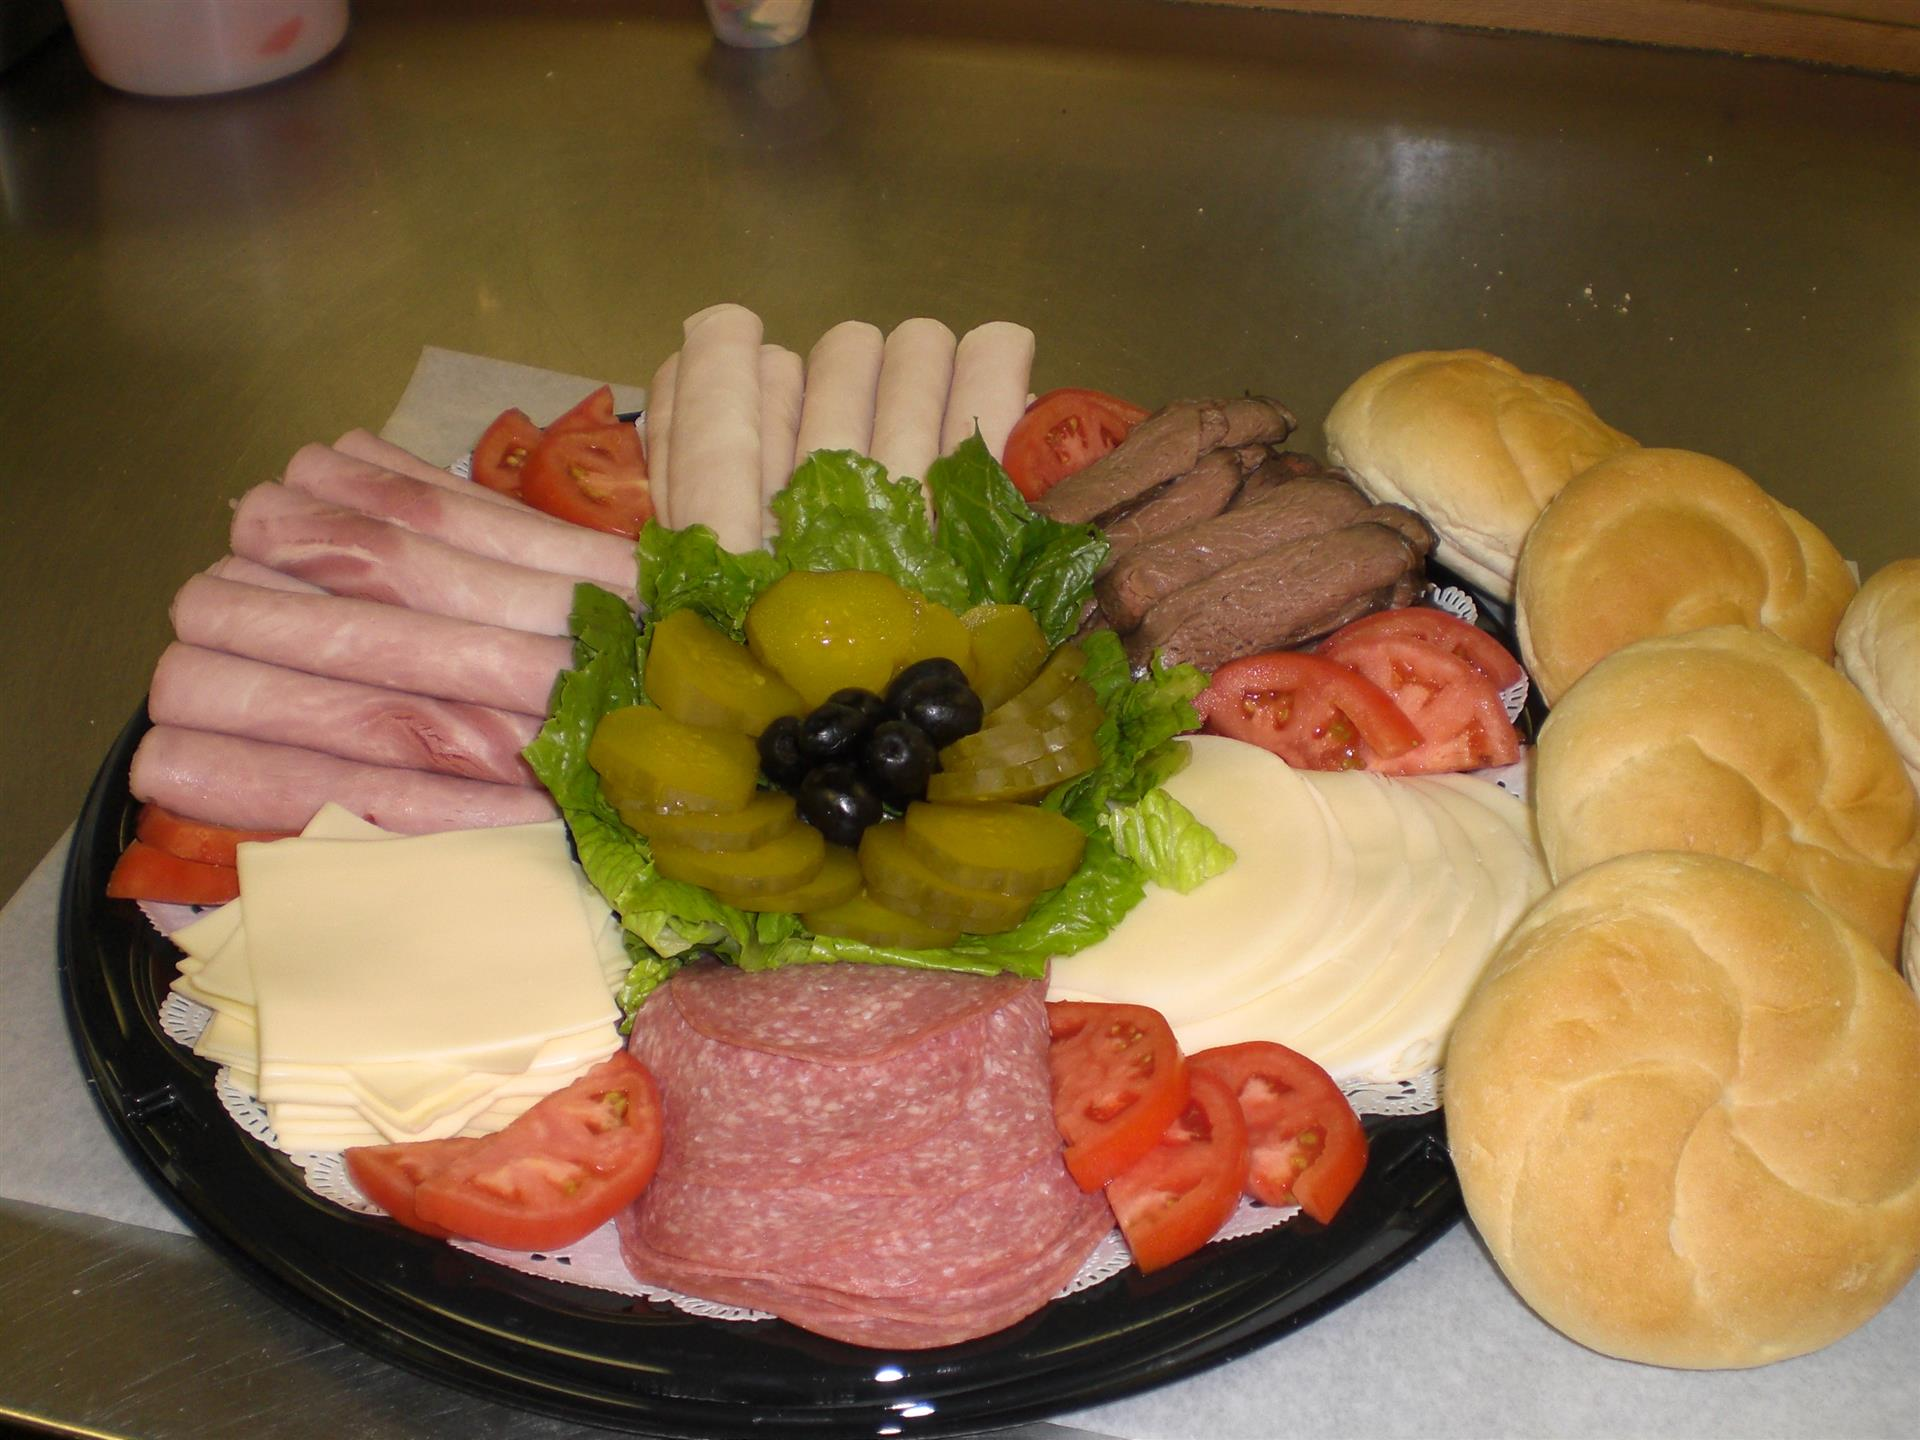 Deli platter with deli meats, cheese, tomatoes and pickles and rolls on the side